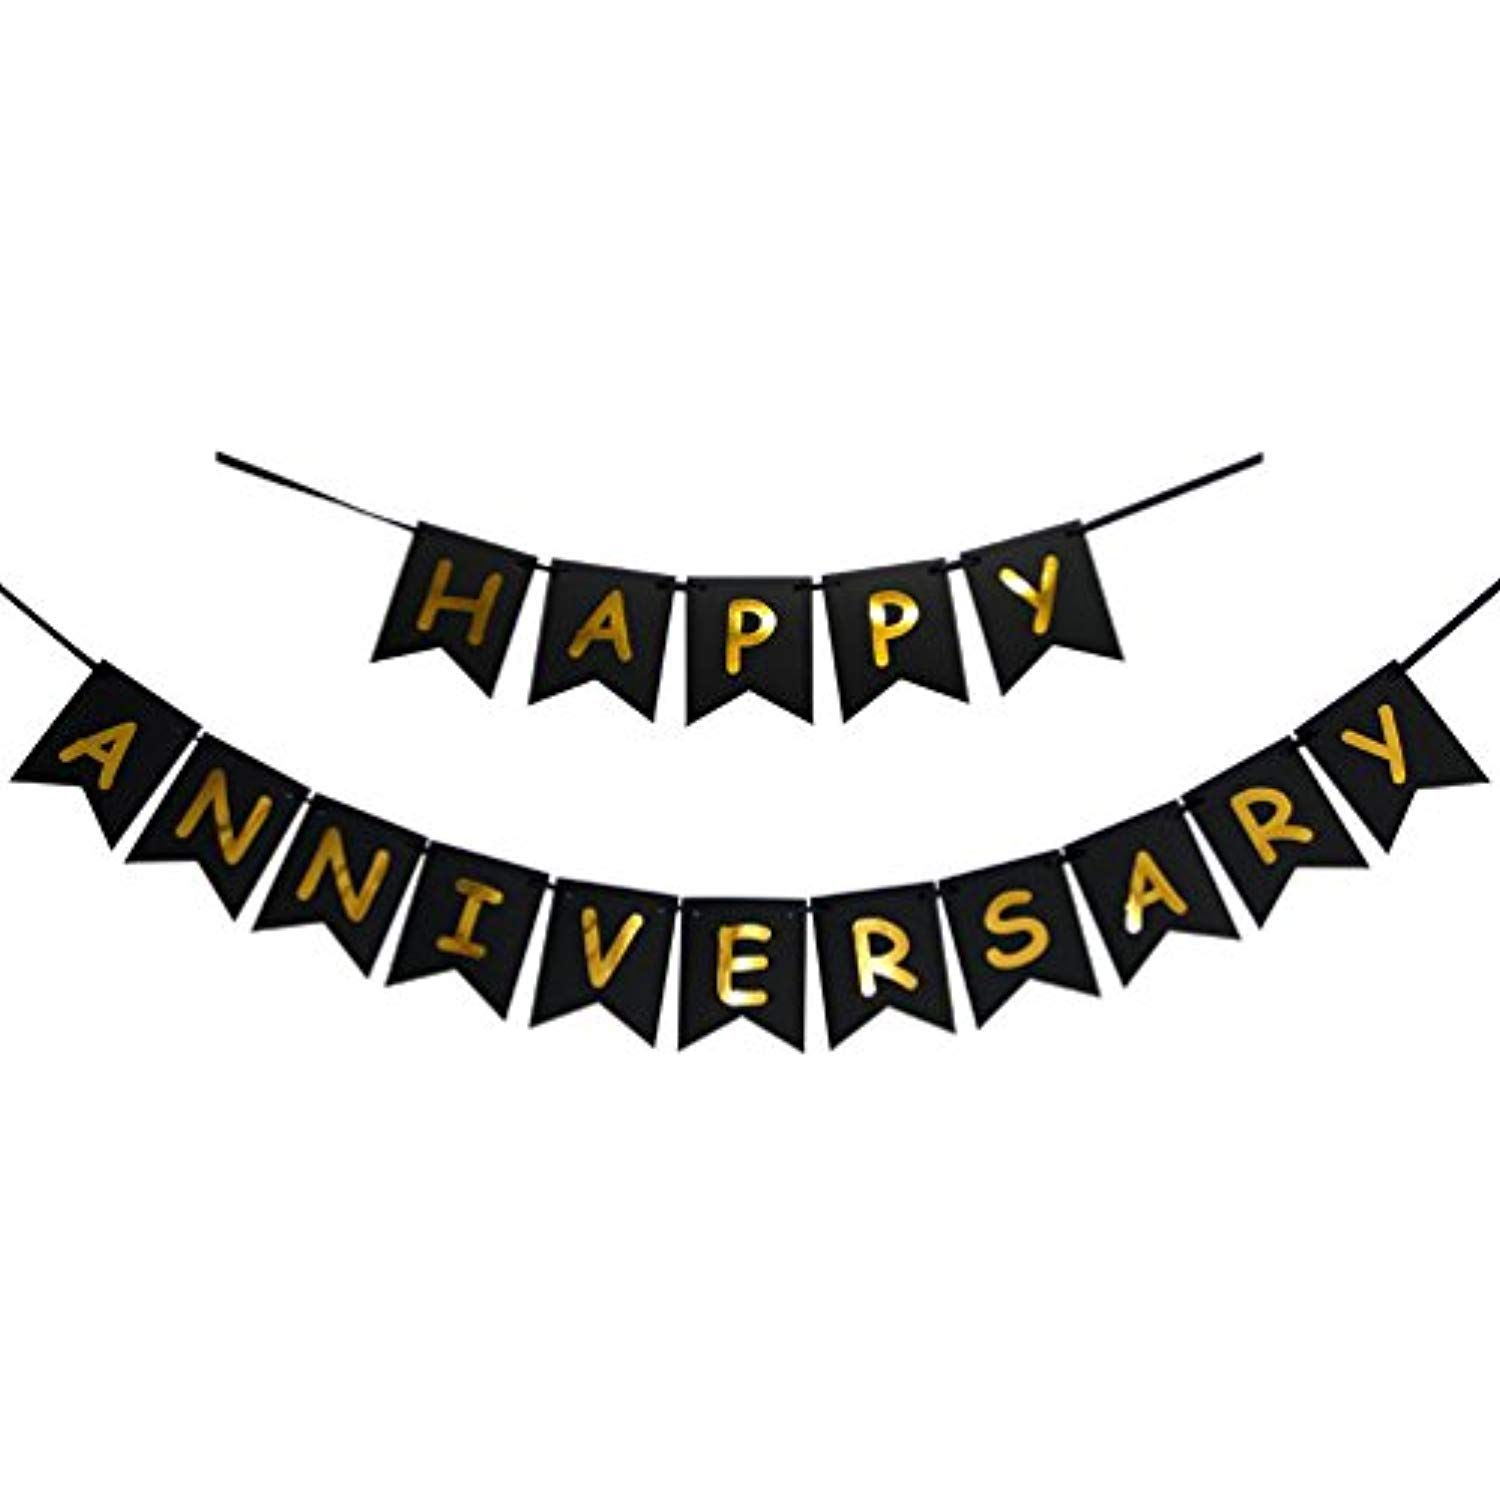 Gold Foiled Sign INNORU Happy Anniversary Banner Wedding Anniversary Party Decoration Photo Props